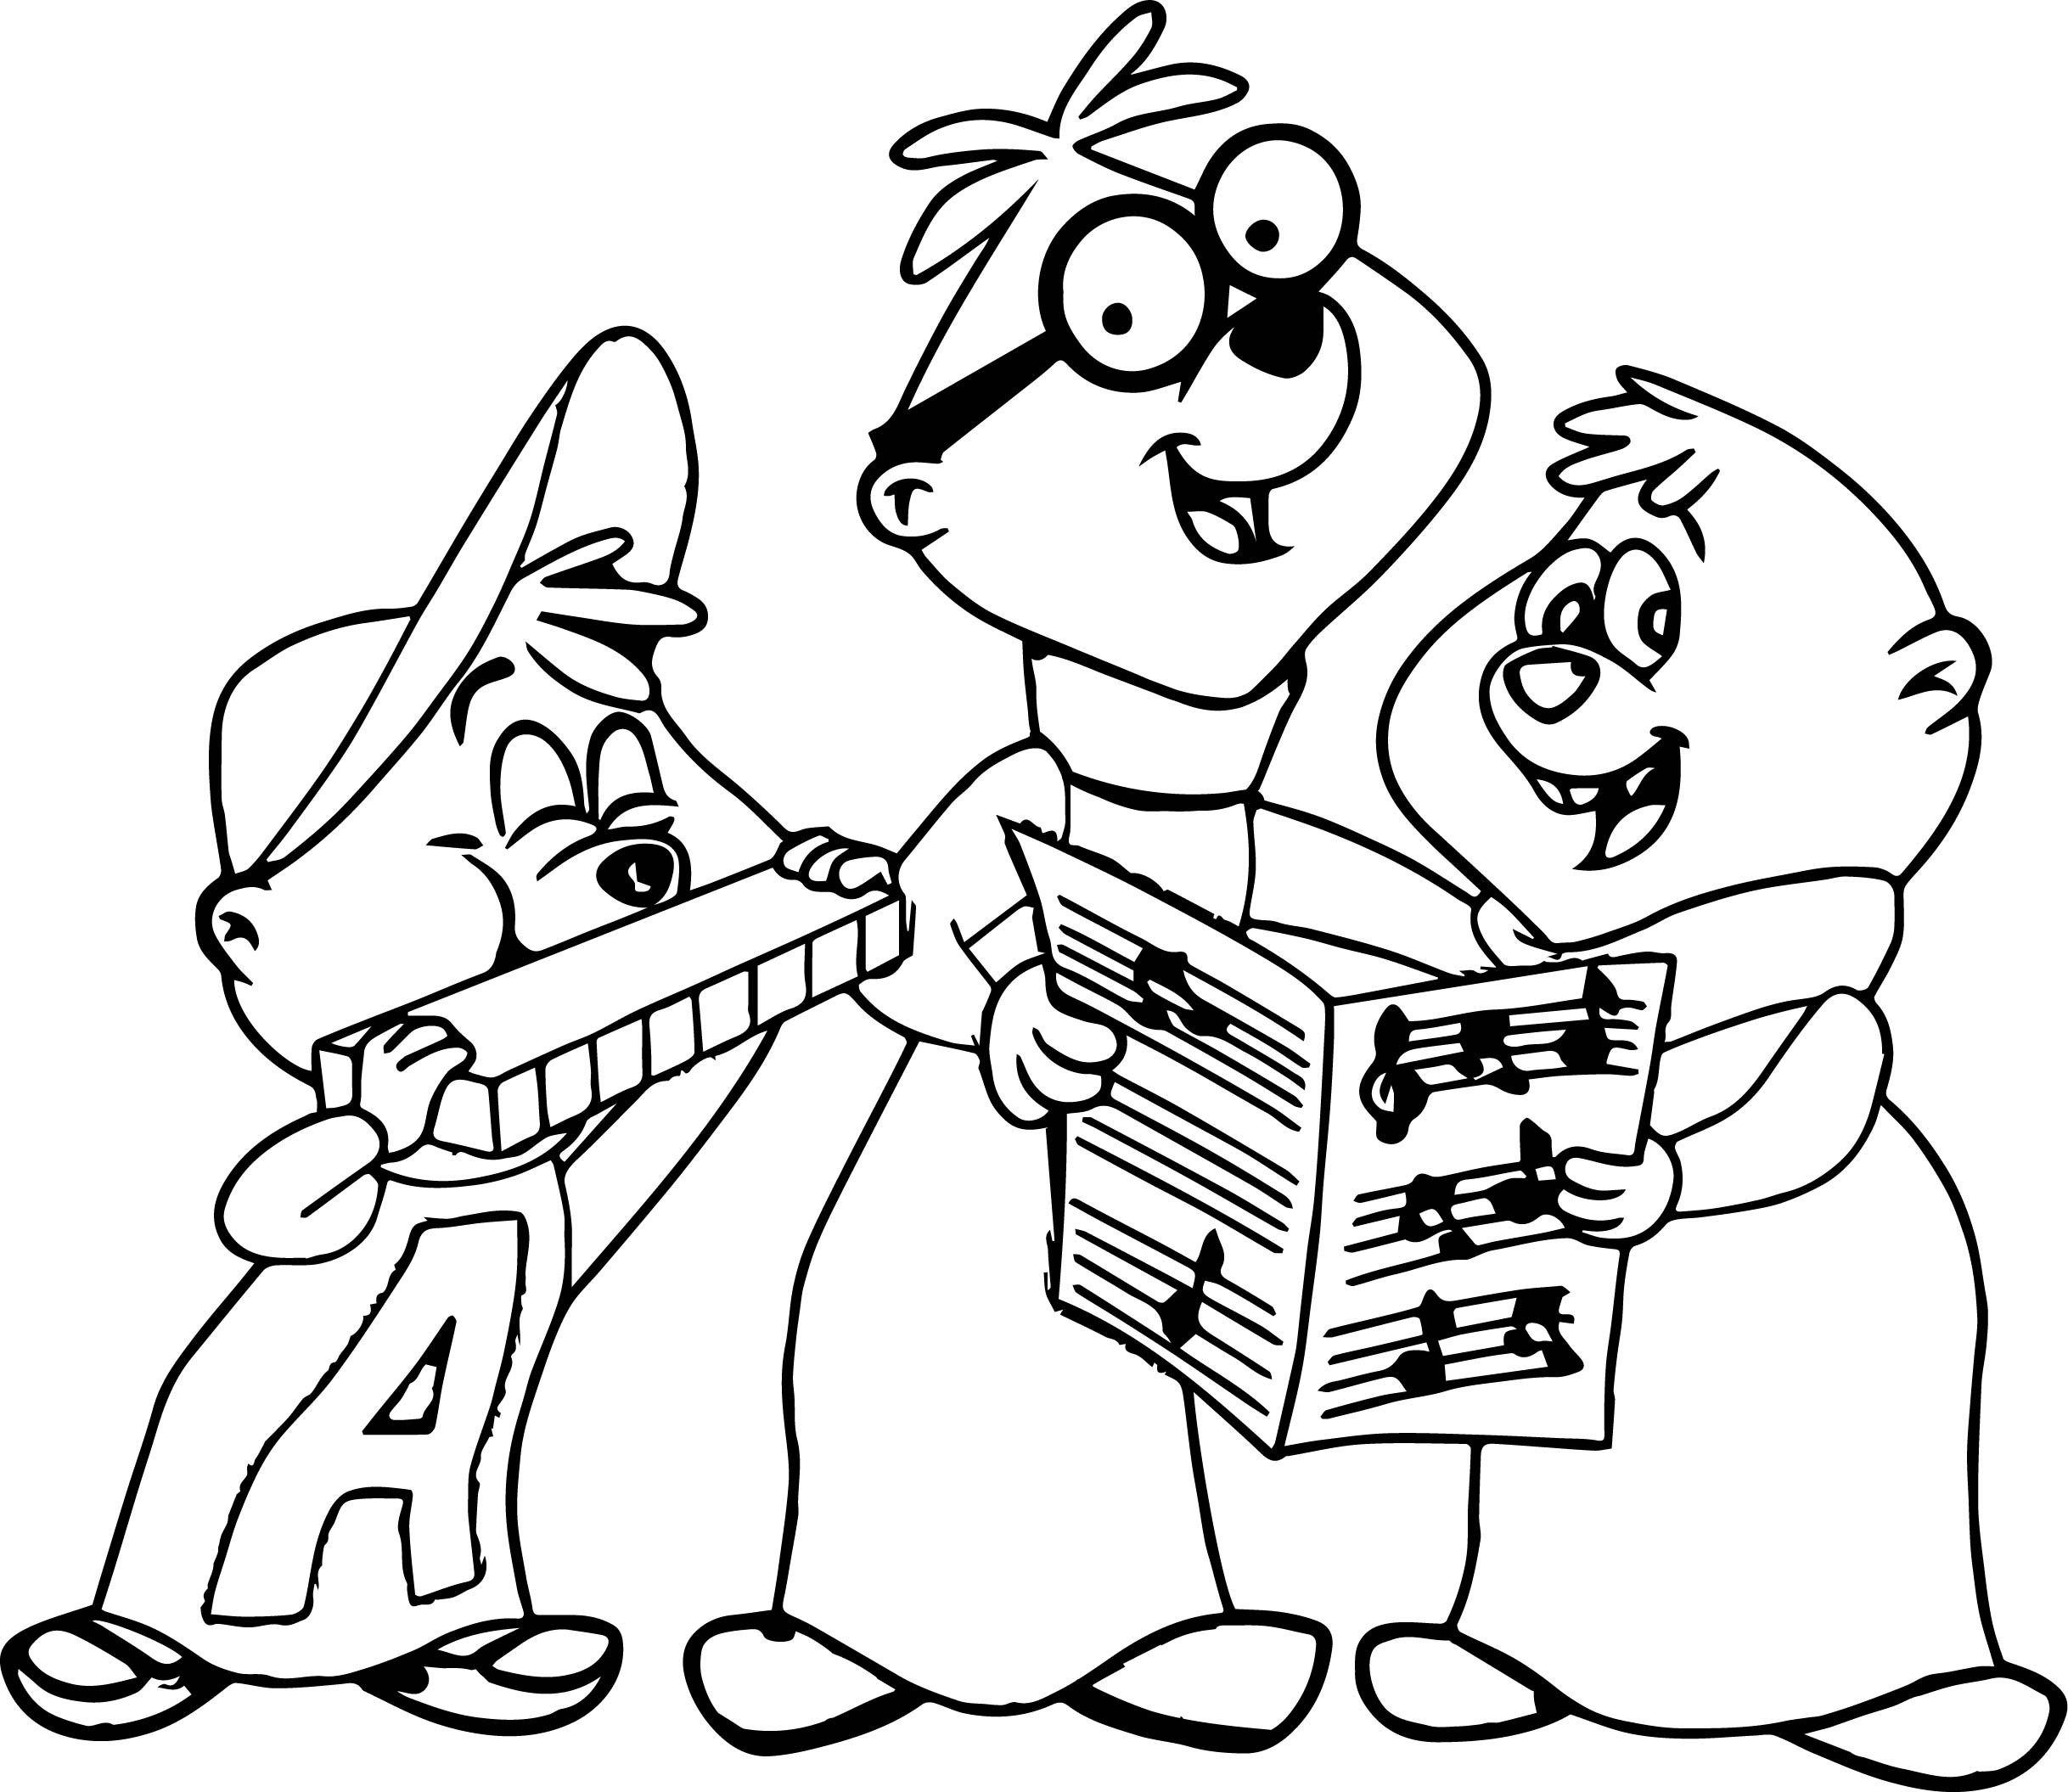 the alvin show colored coloring page wecoloringpage